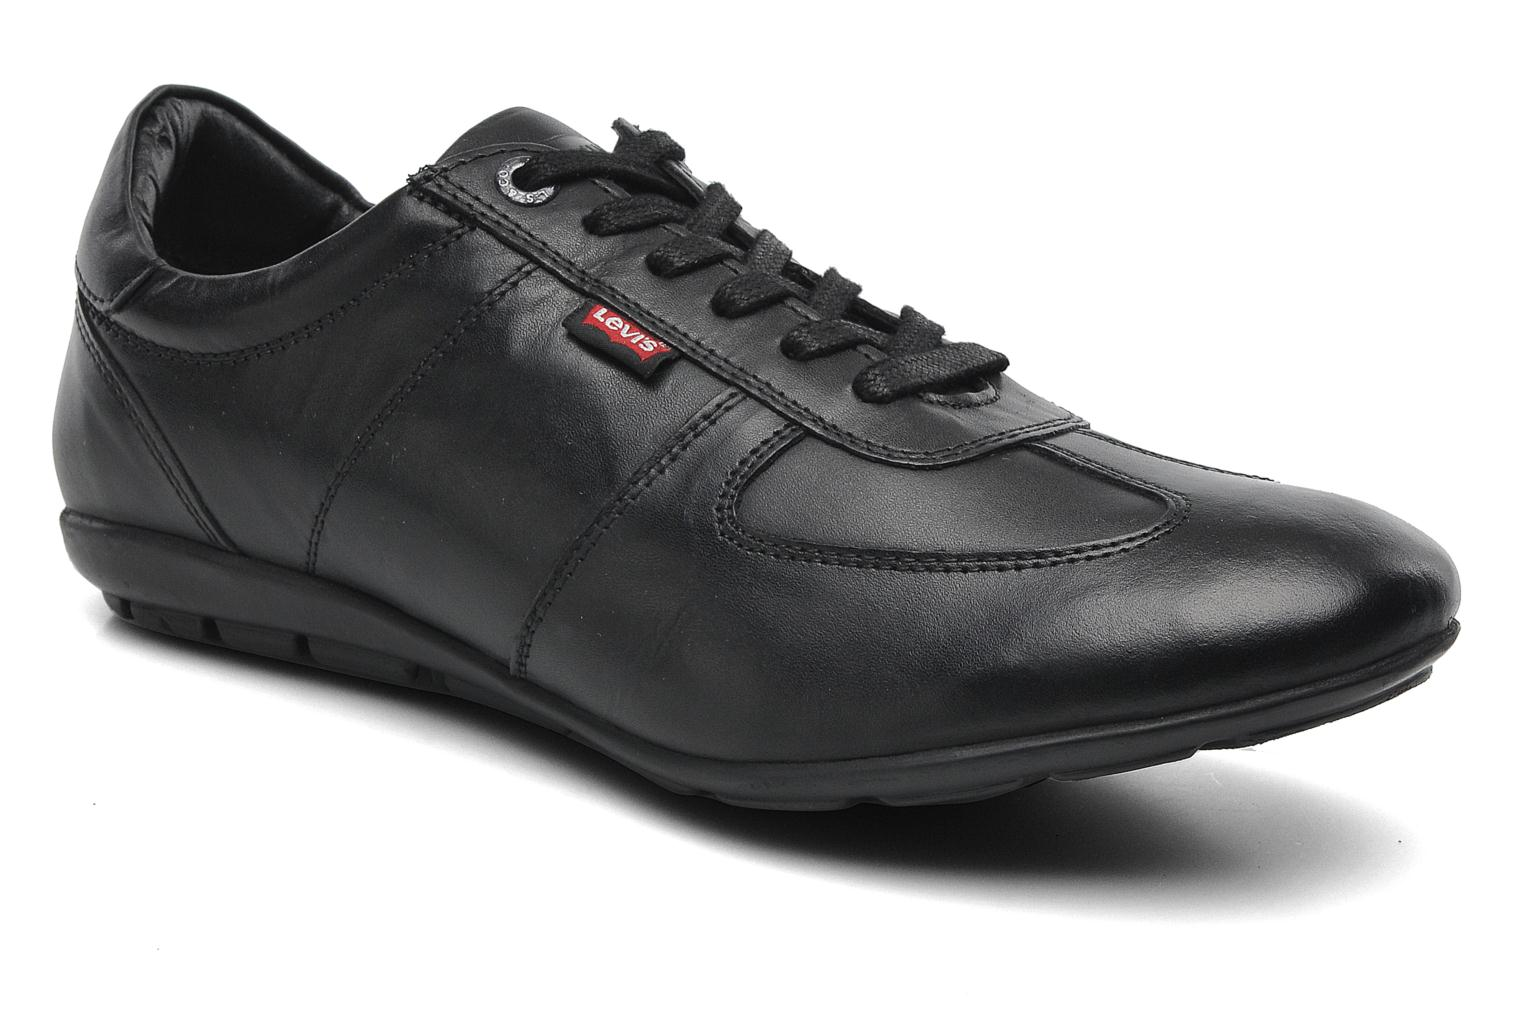 Sneakers Chula Vista by Levi's